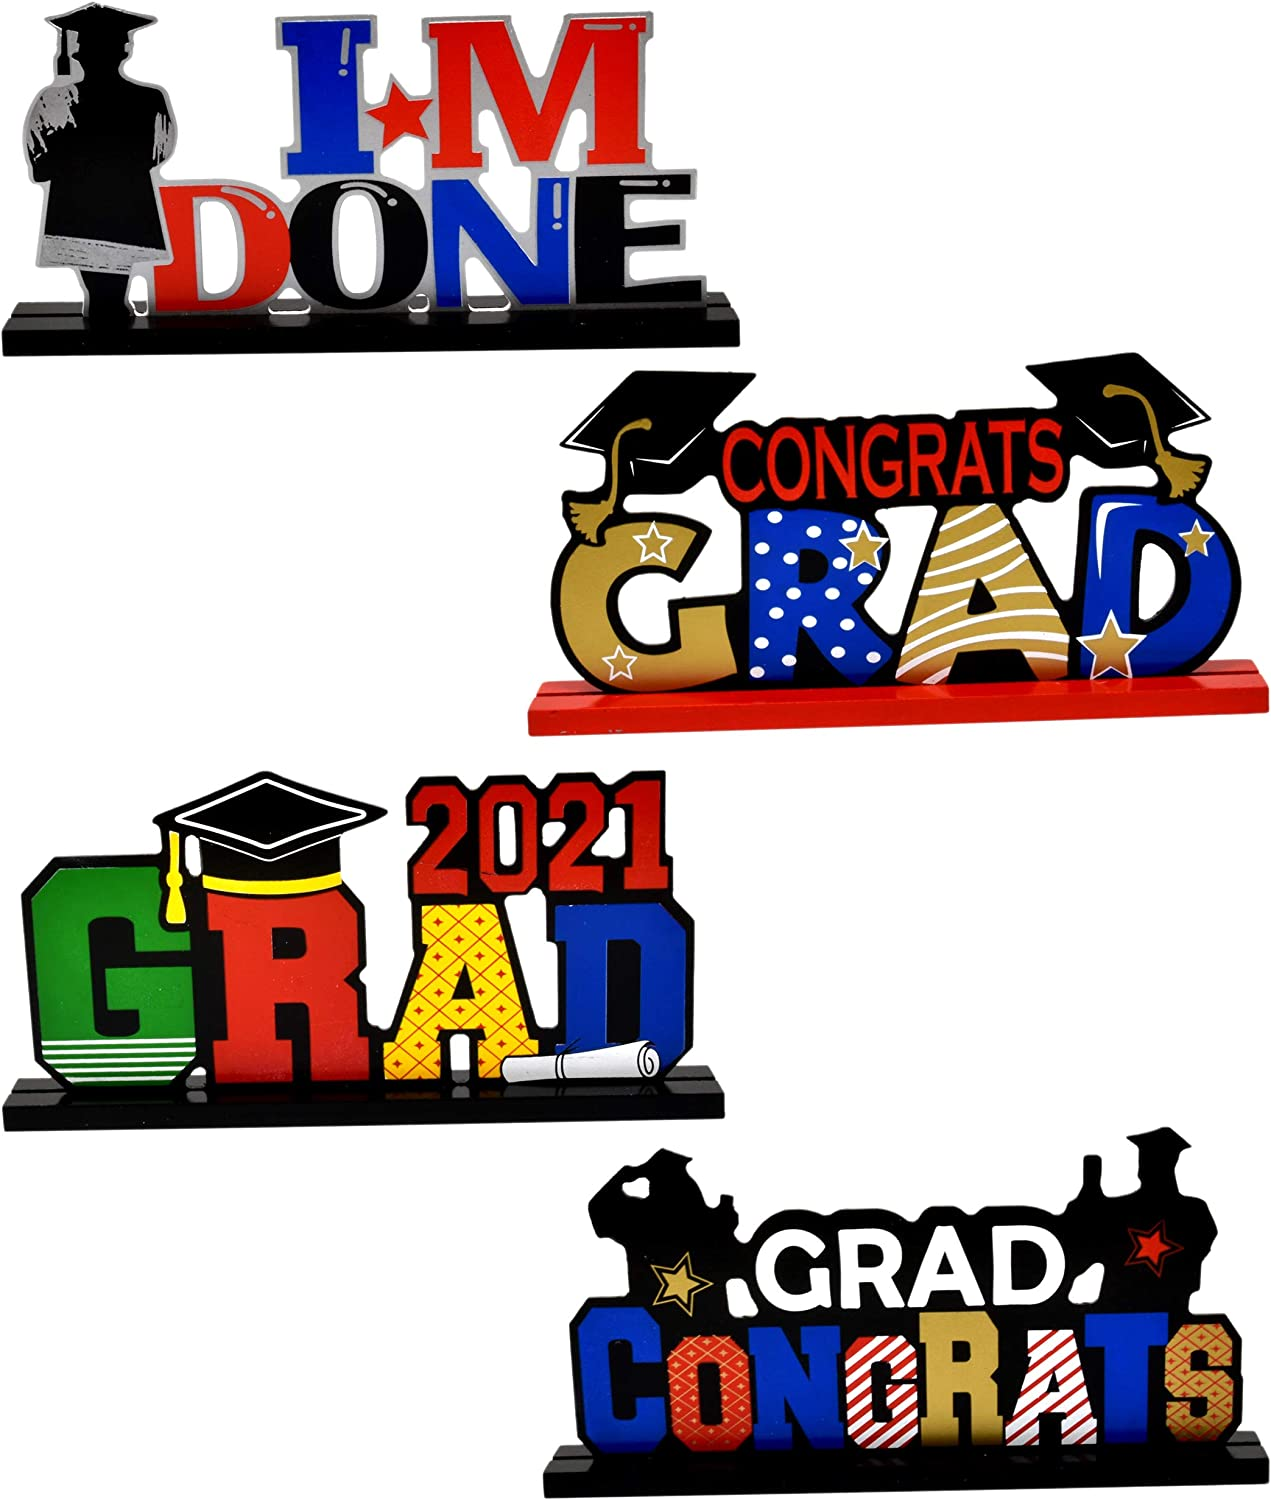 Graduation Table Decorations Set of 4 Congrats Grad Table Toppers Centerpiece Class of 2021 Wooden Signs Gifts for Nurse College Graduate High School Classroom Desk Shelf Home Party Supplies Decor